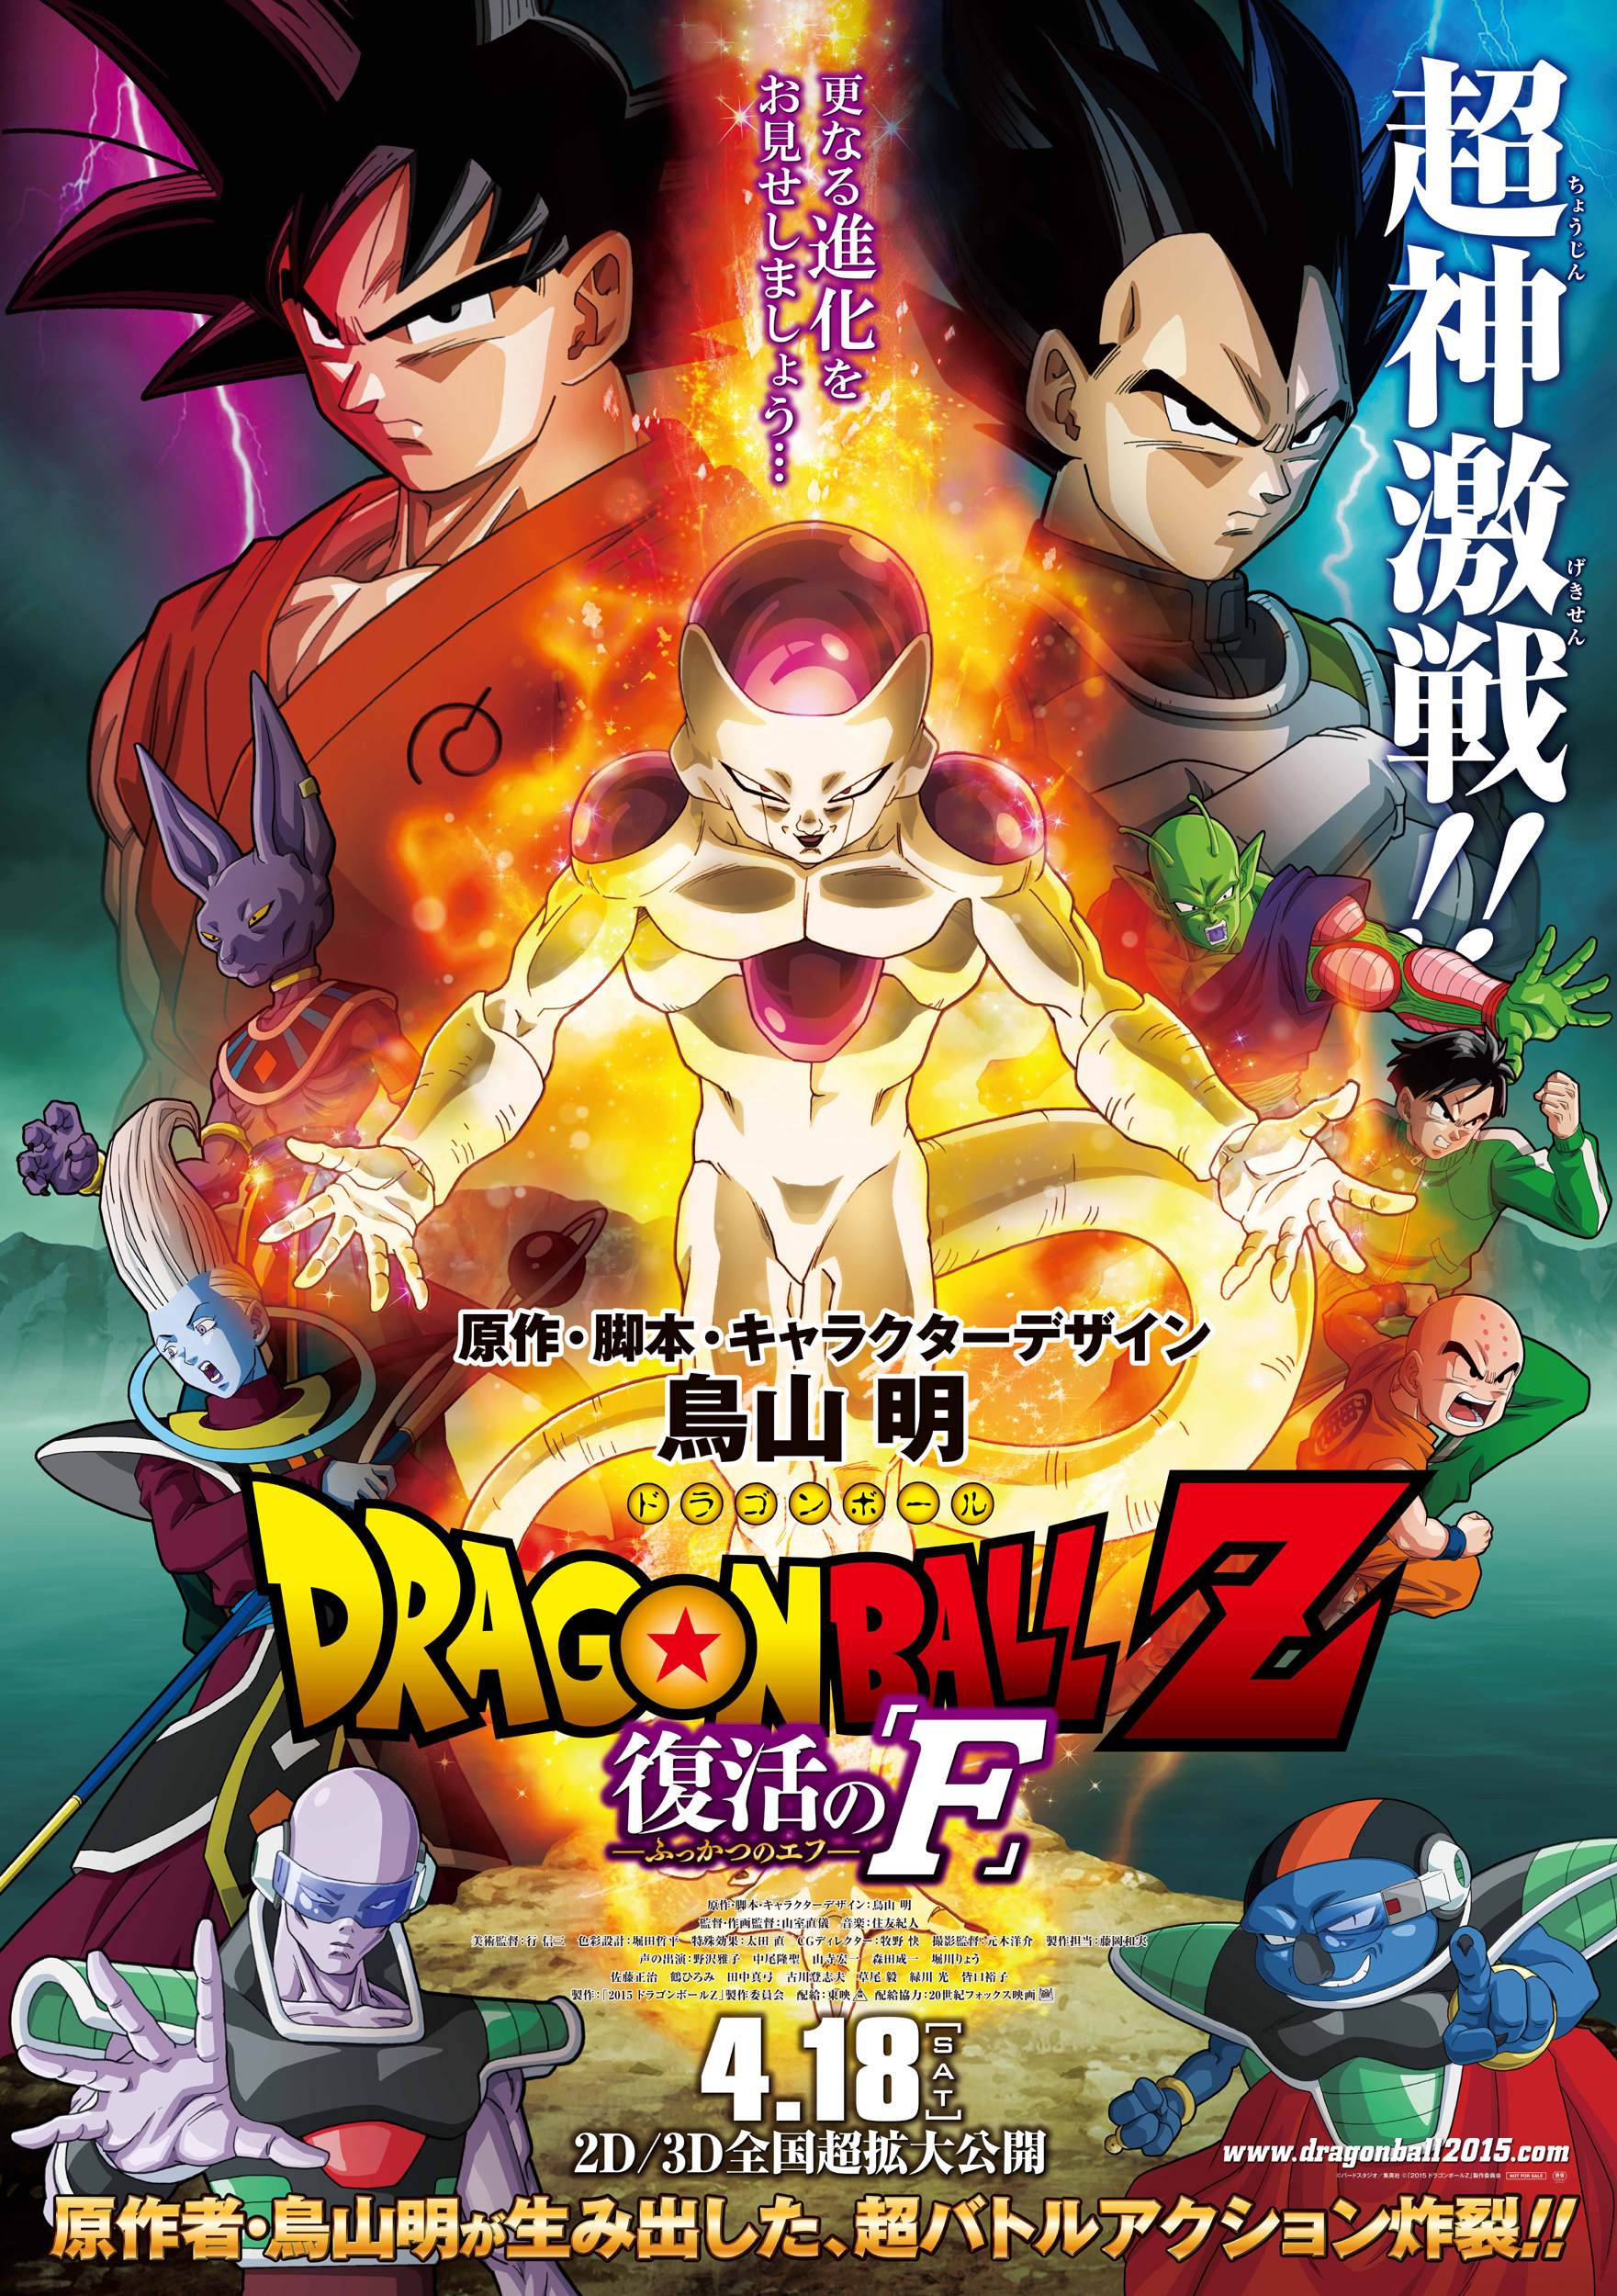 DRAGON BALL Z: RESURRECTION 'F' Wins the Japan Academy Prize for Best Animated Film   Anime - Animation   News